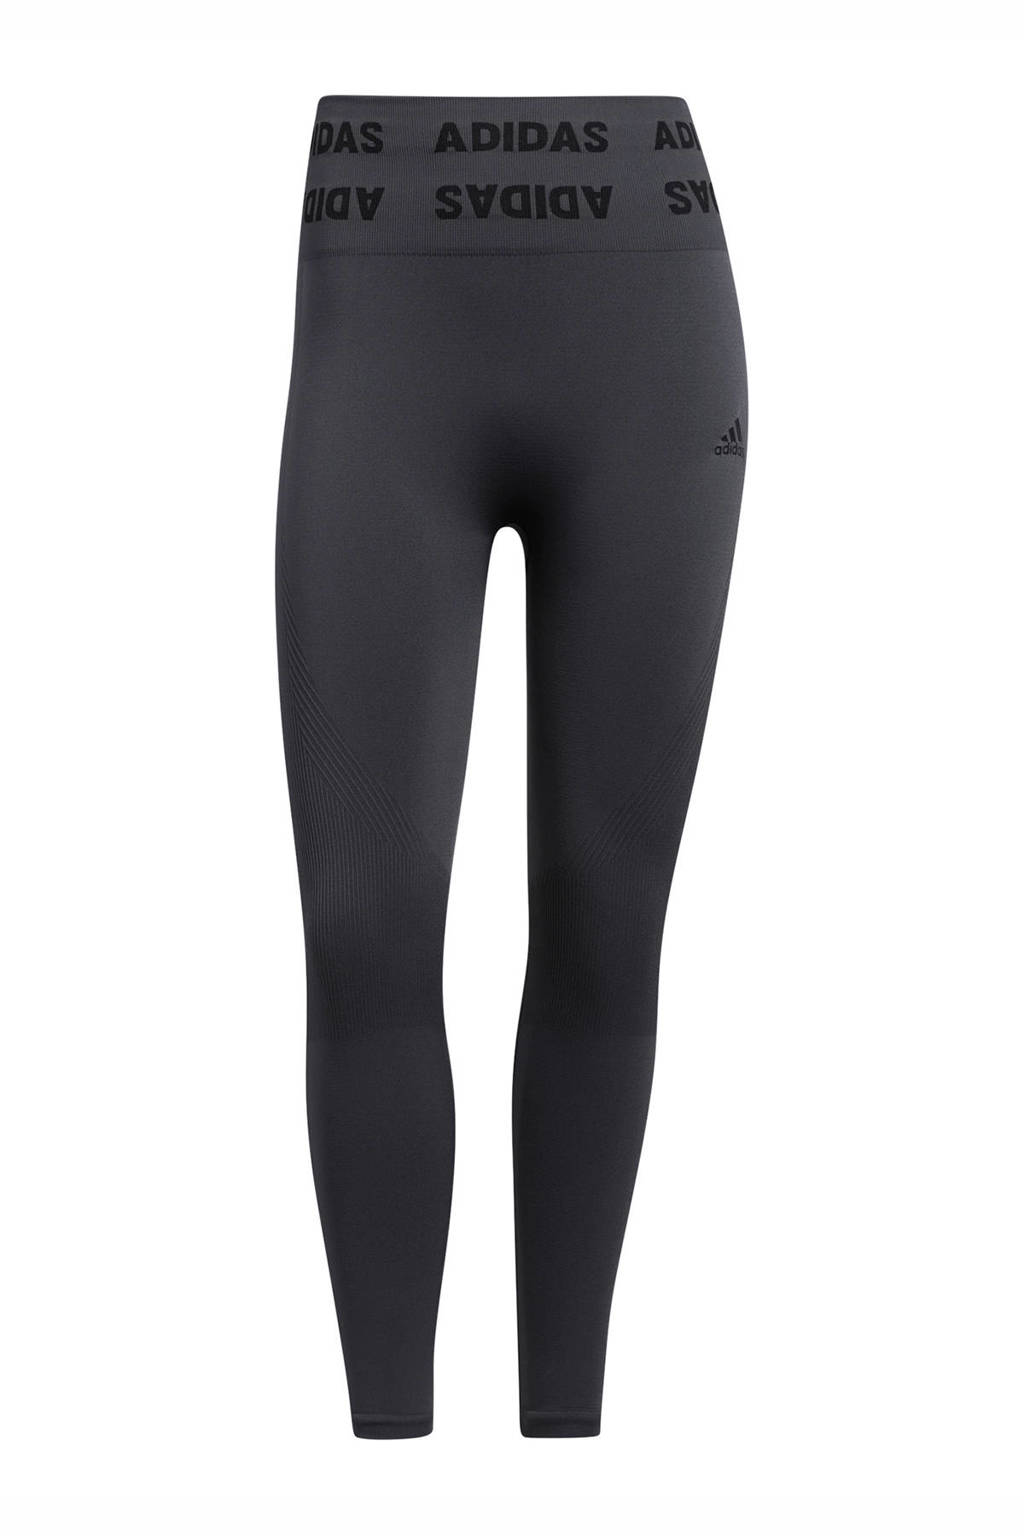 adidas Performance Aeroknit Designed4Training sportlegging grijs, Grijs